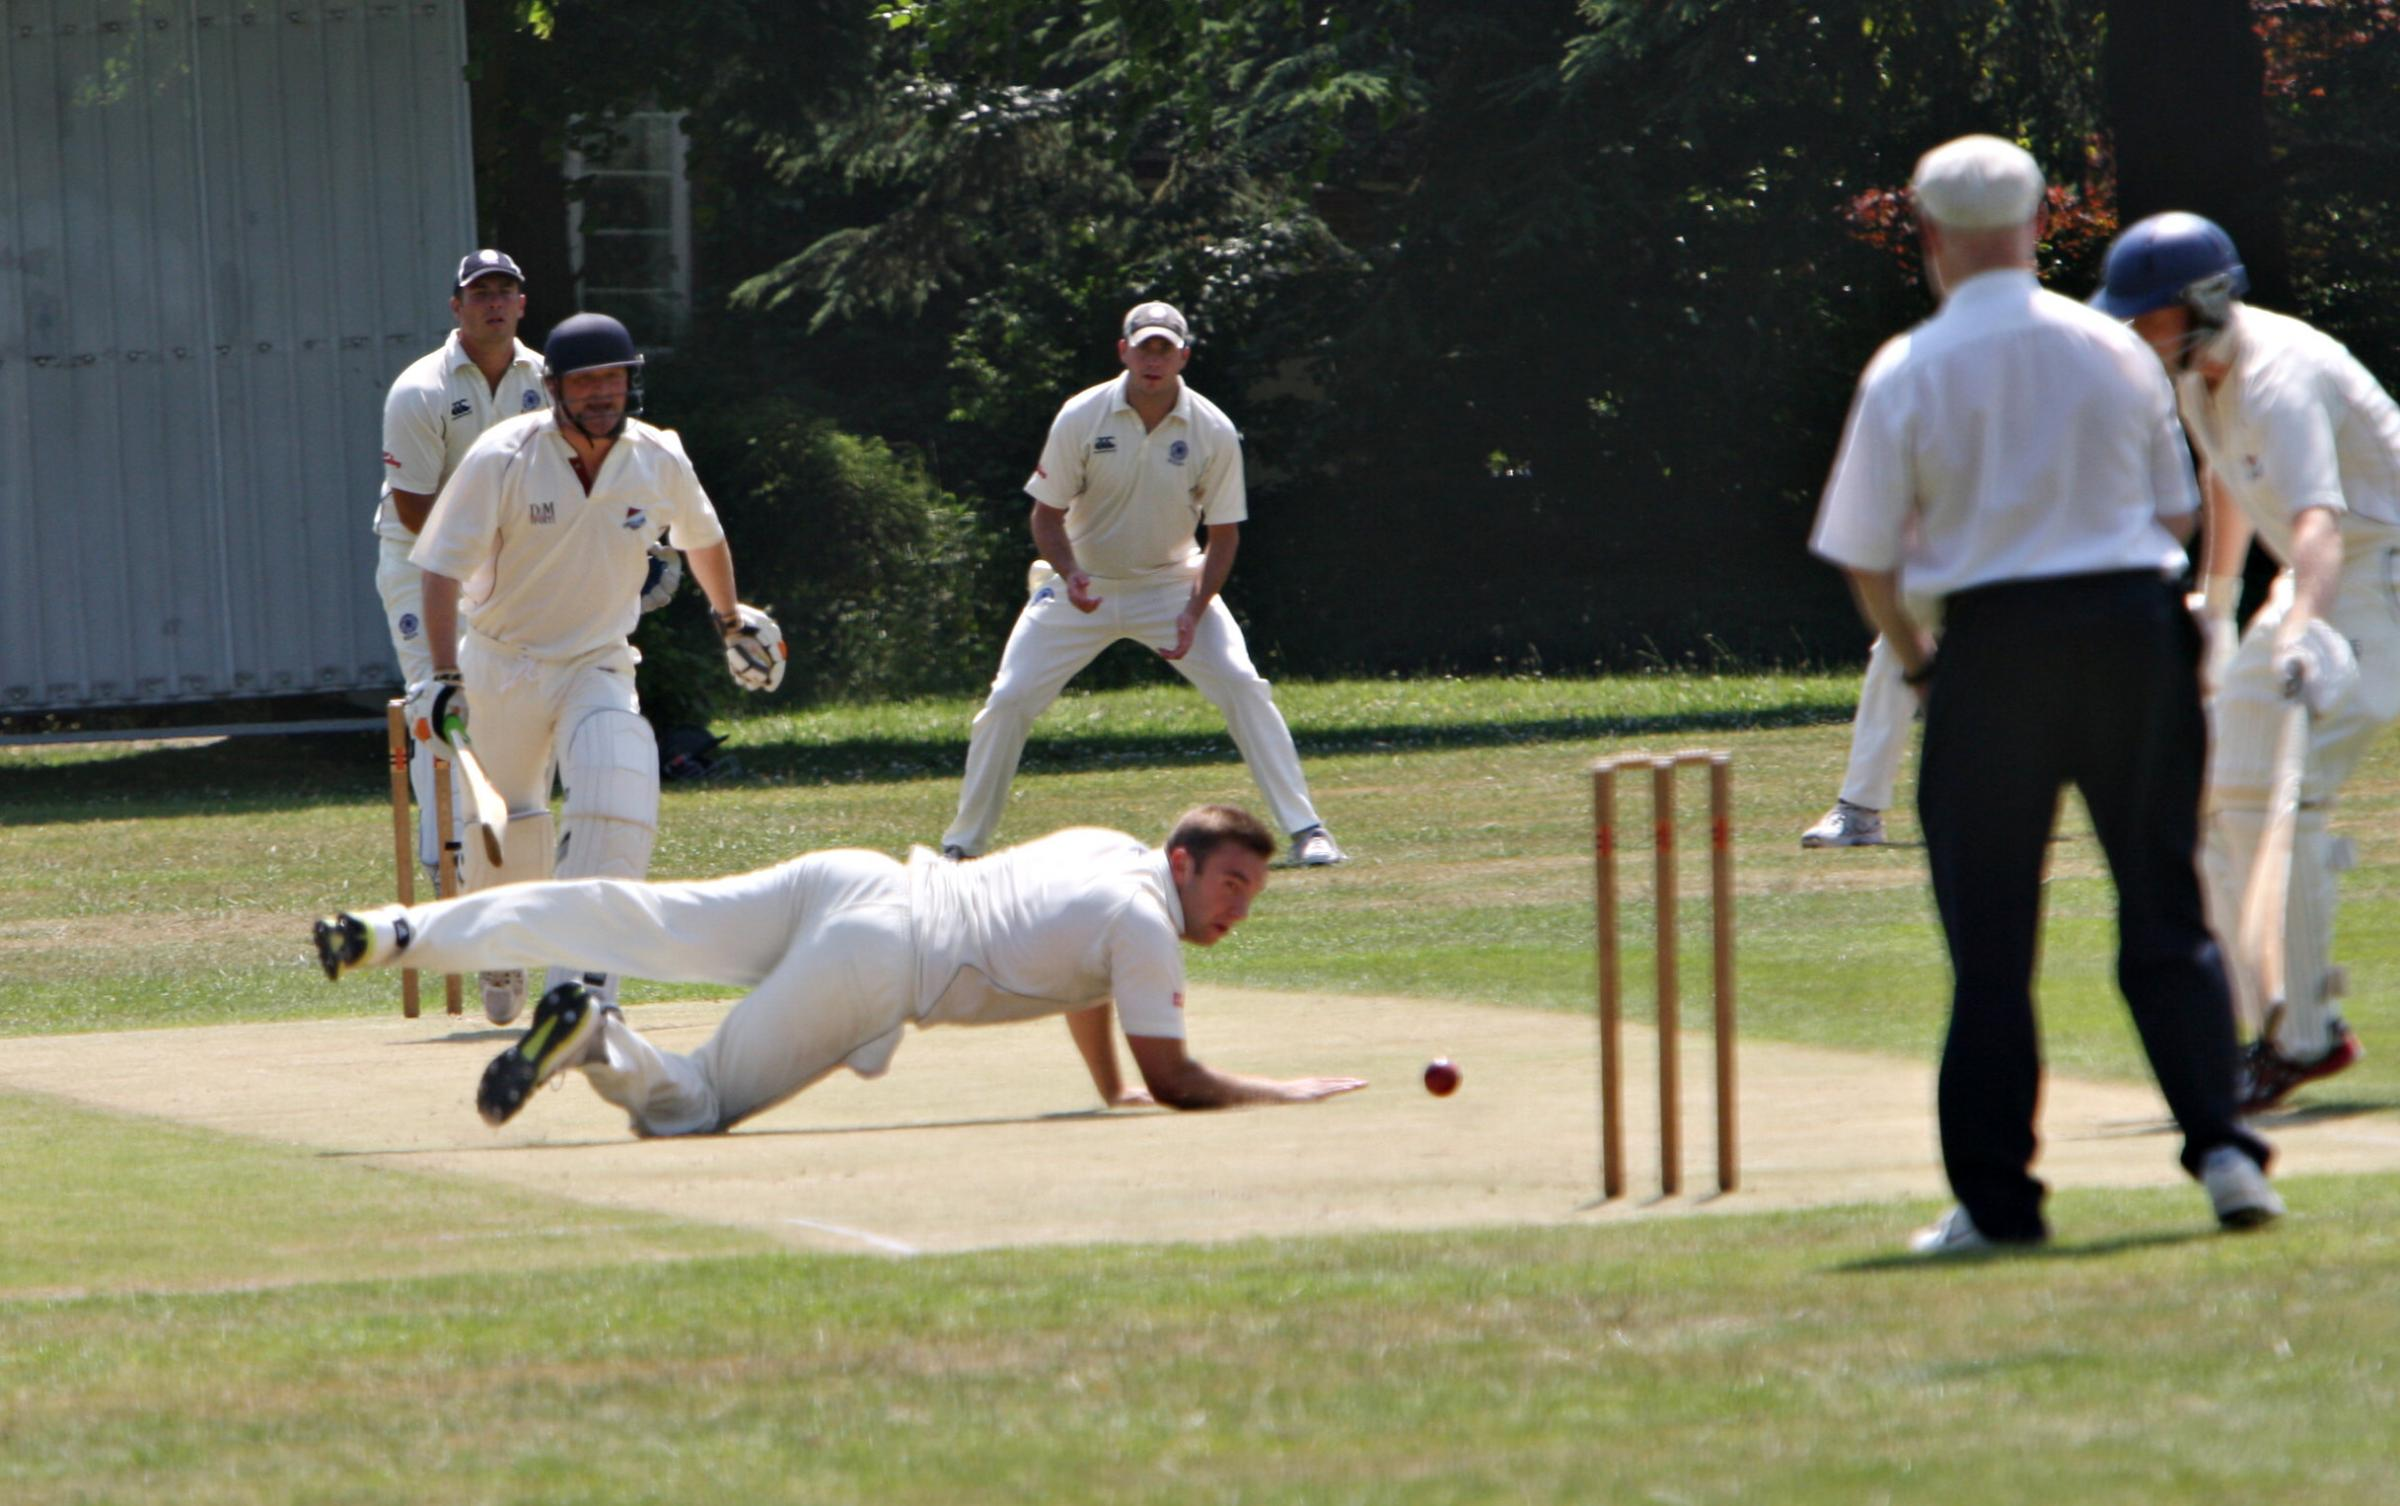 Kings Langley (fielding) take on Northwood. Picture: Pippa Douglas